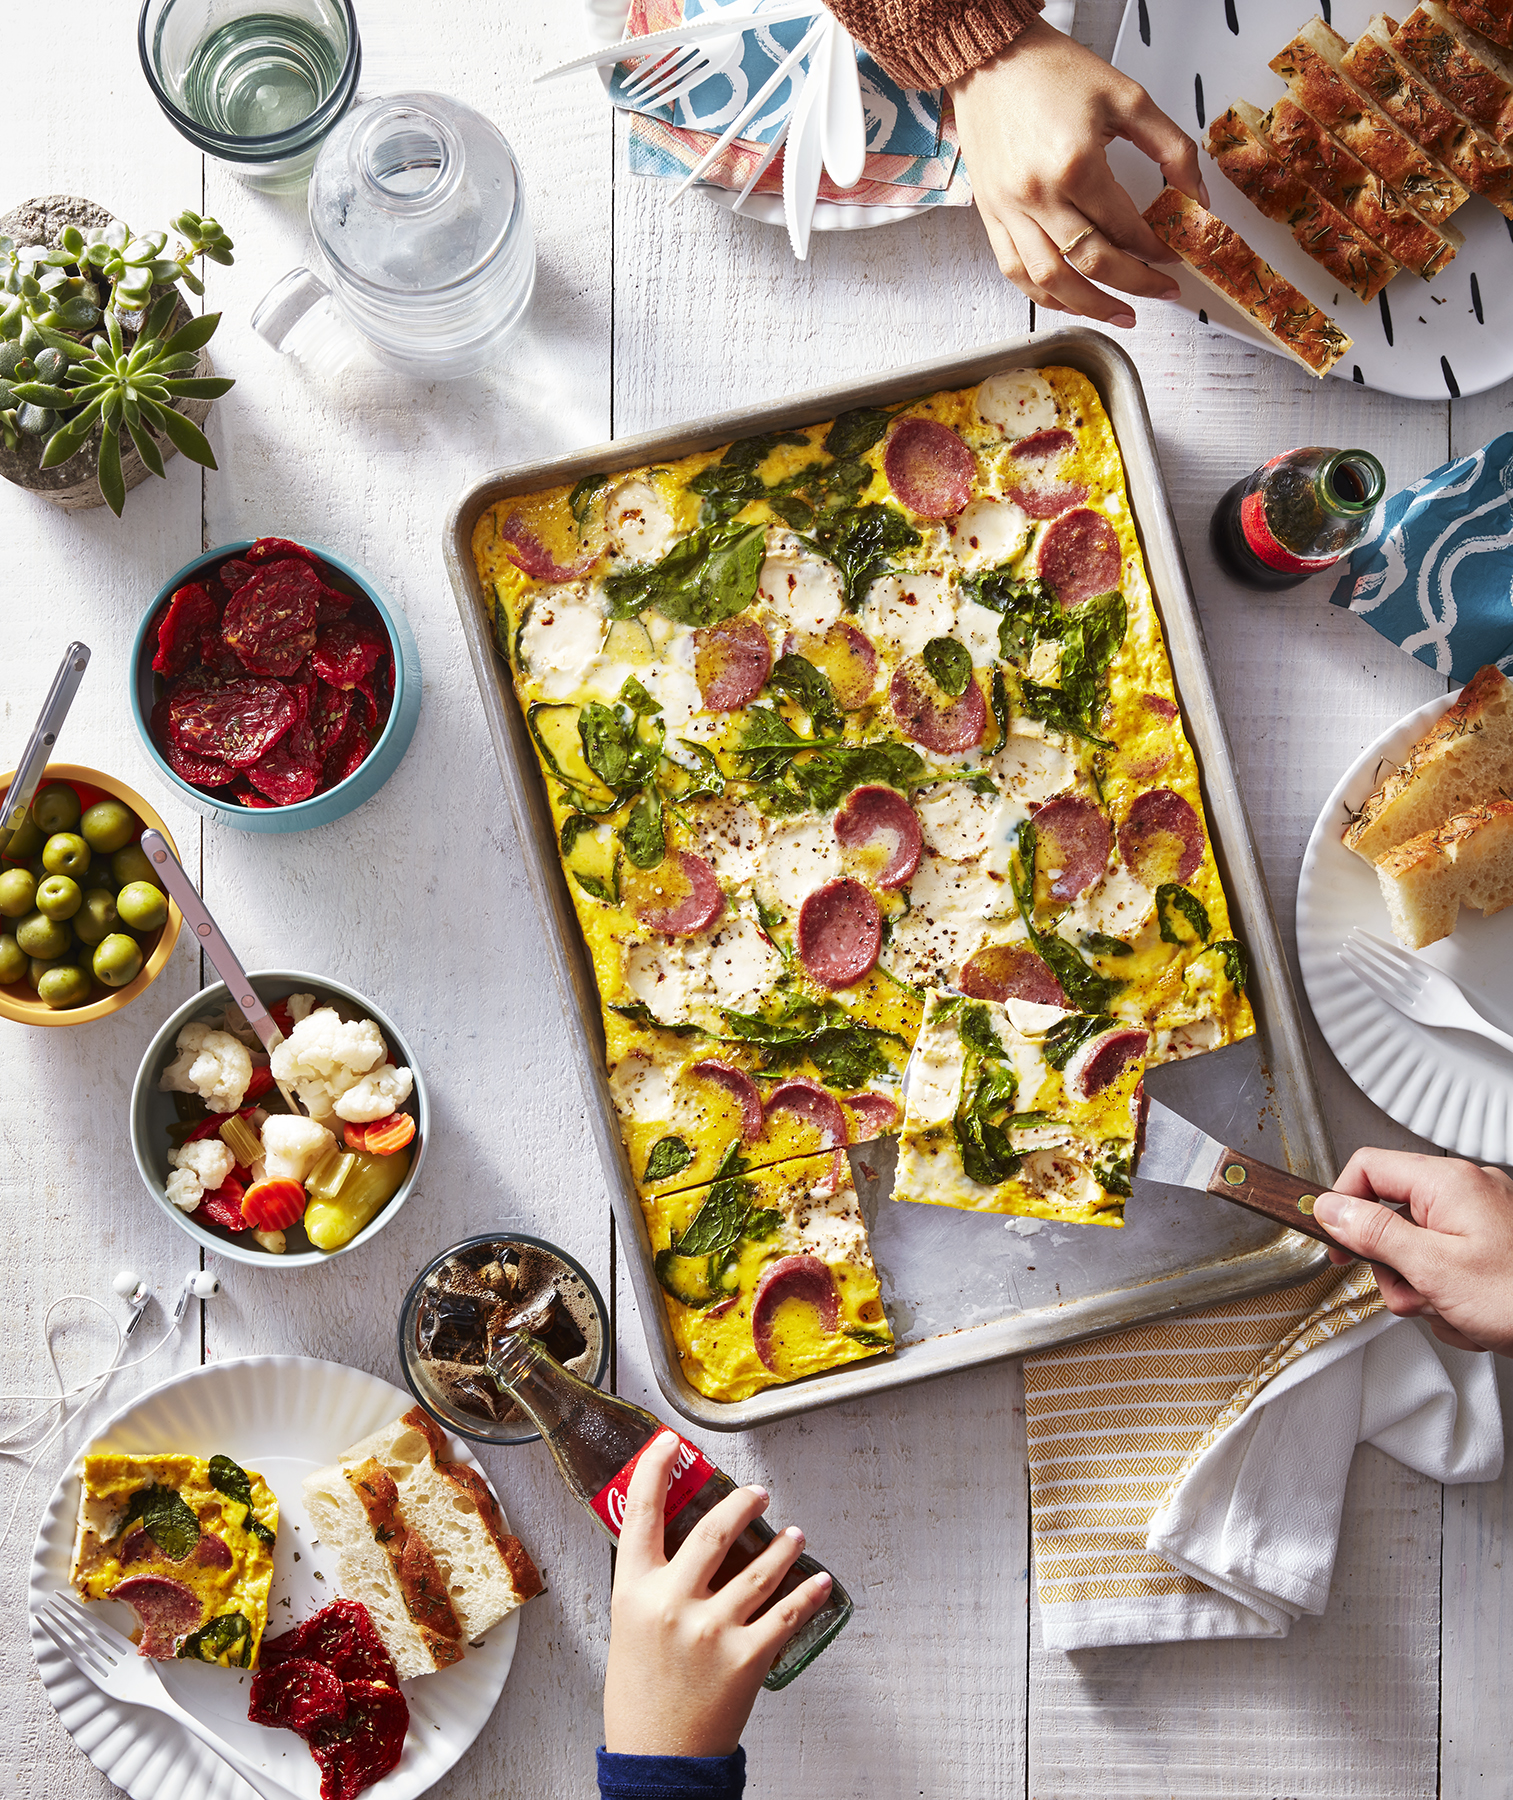 This Is the Best Sheet Pan, According to Our Food Editor